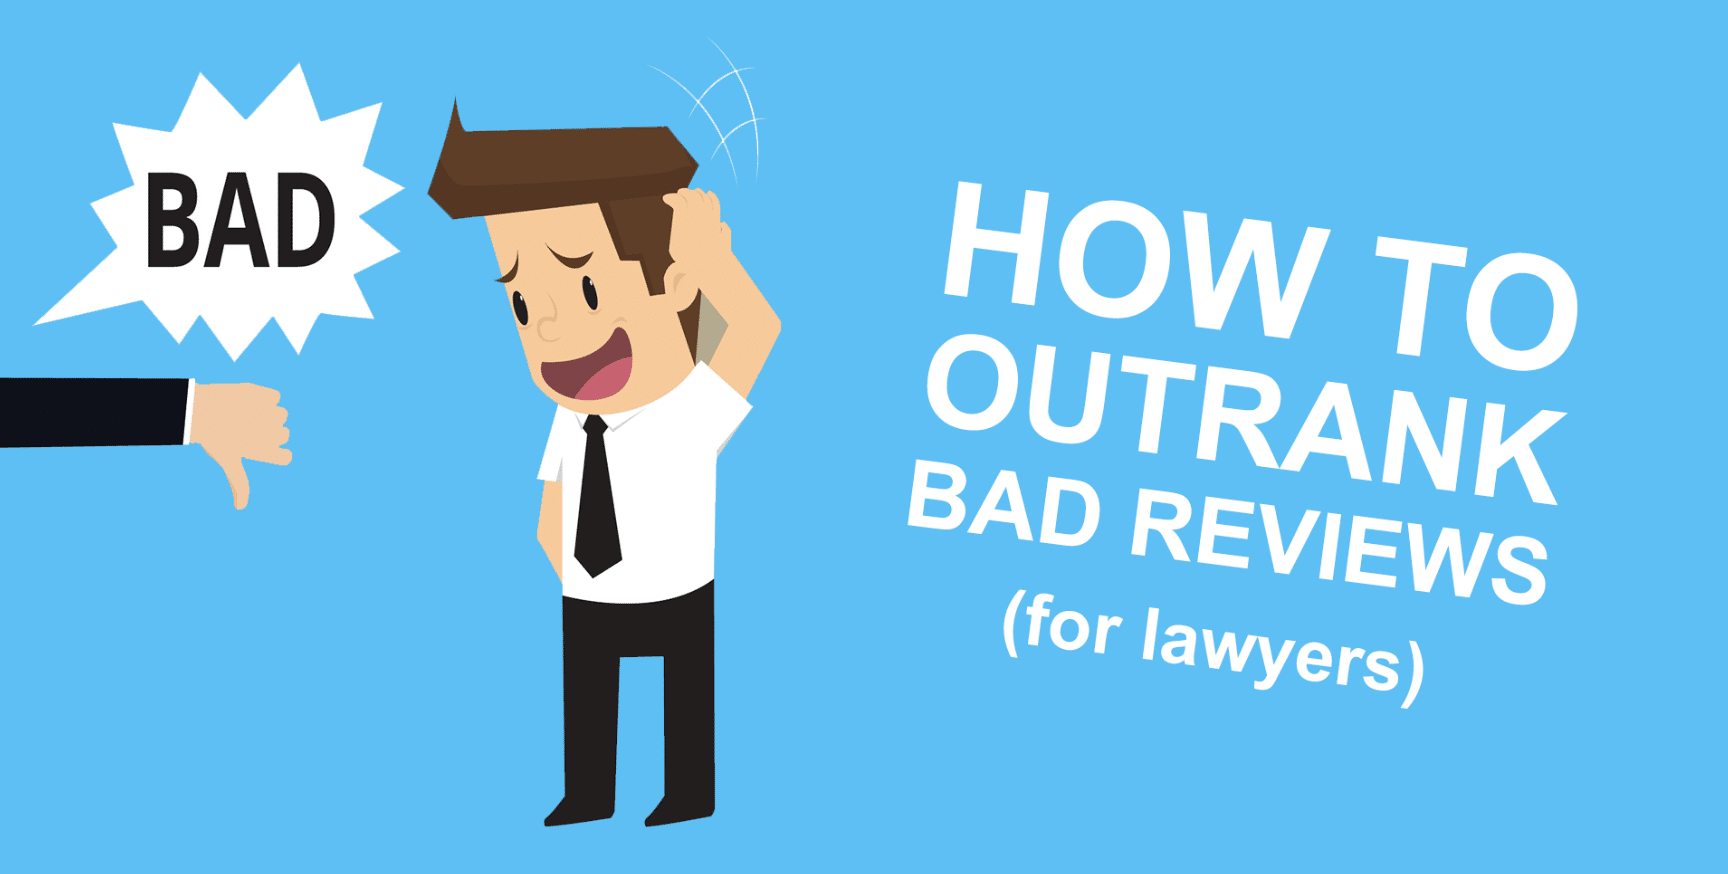 How To Use SEO Keywords On Your Law Firms Blog To Outrank Bad Reviews